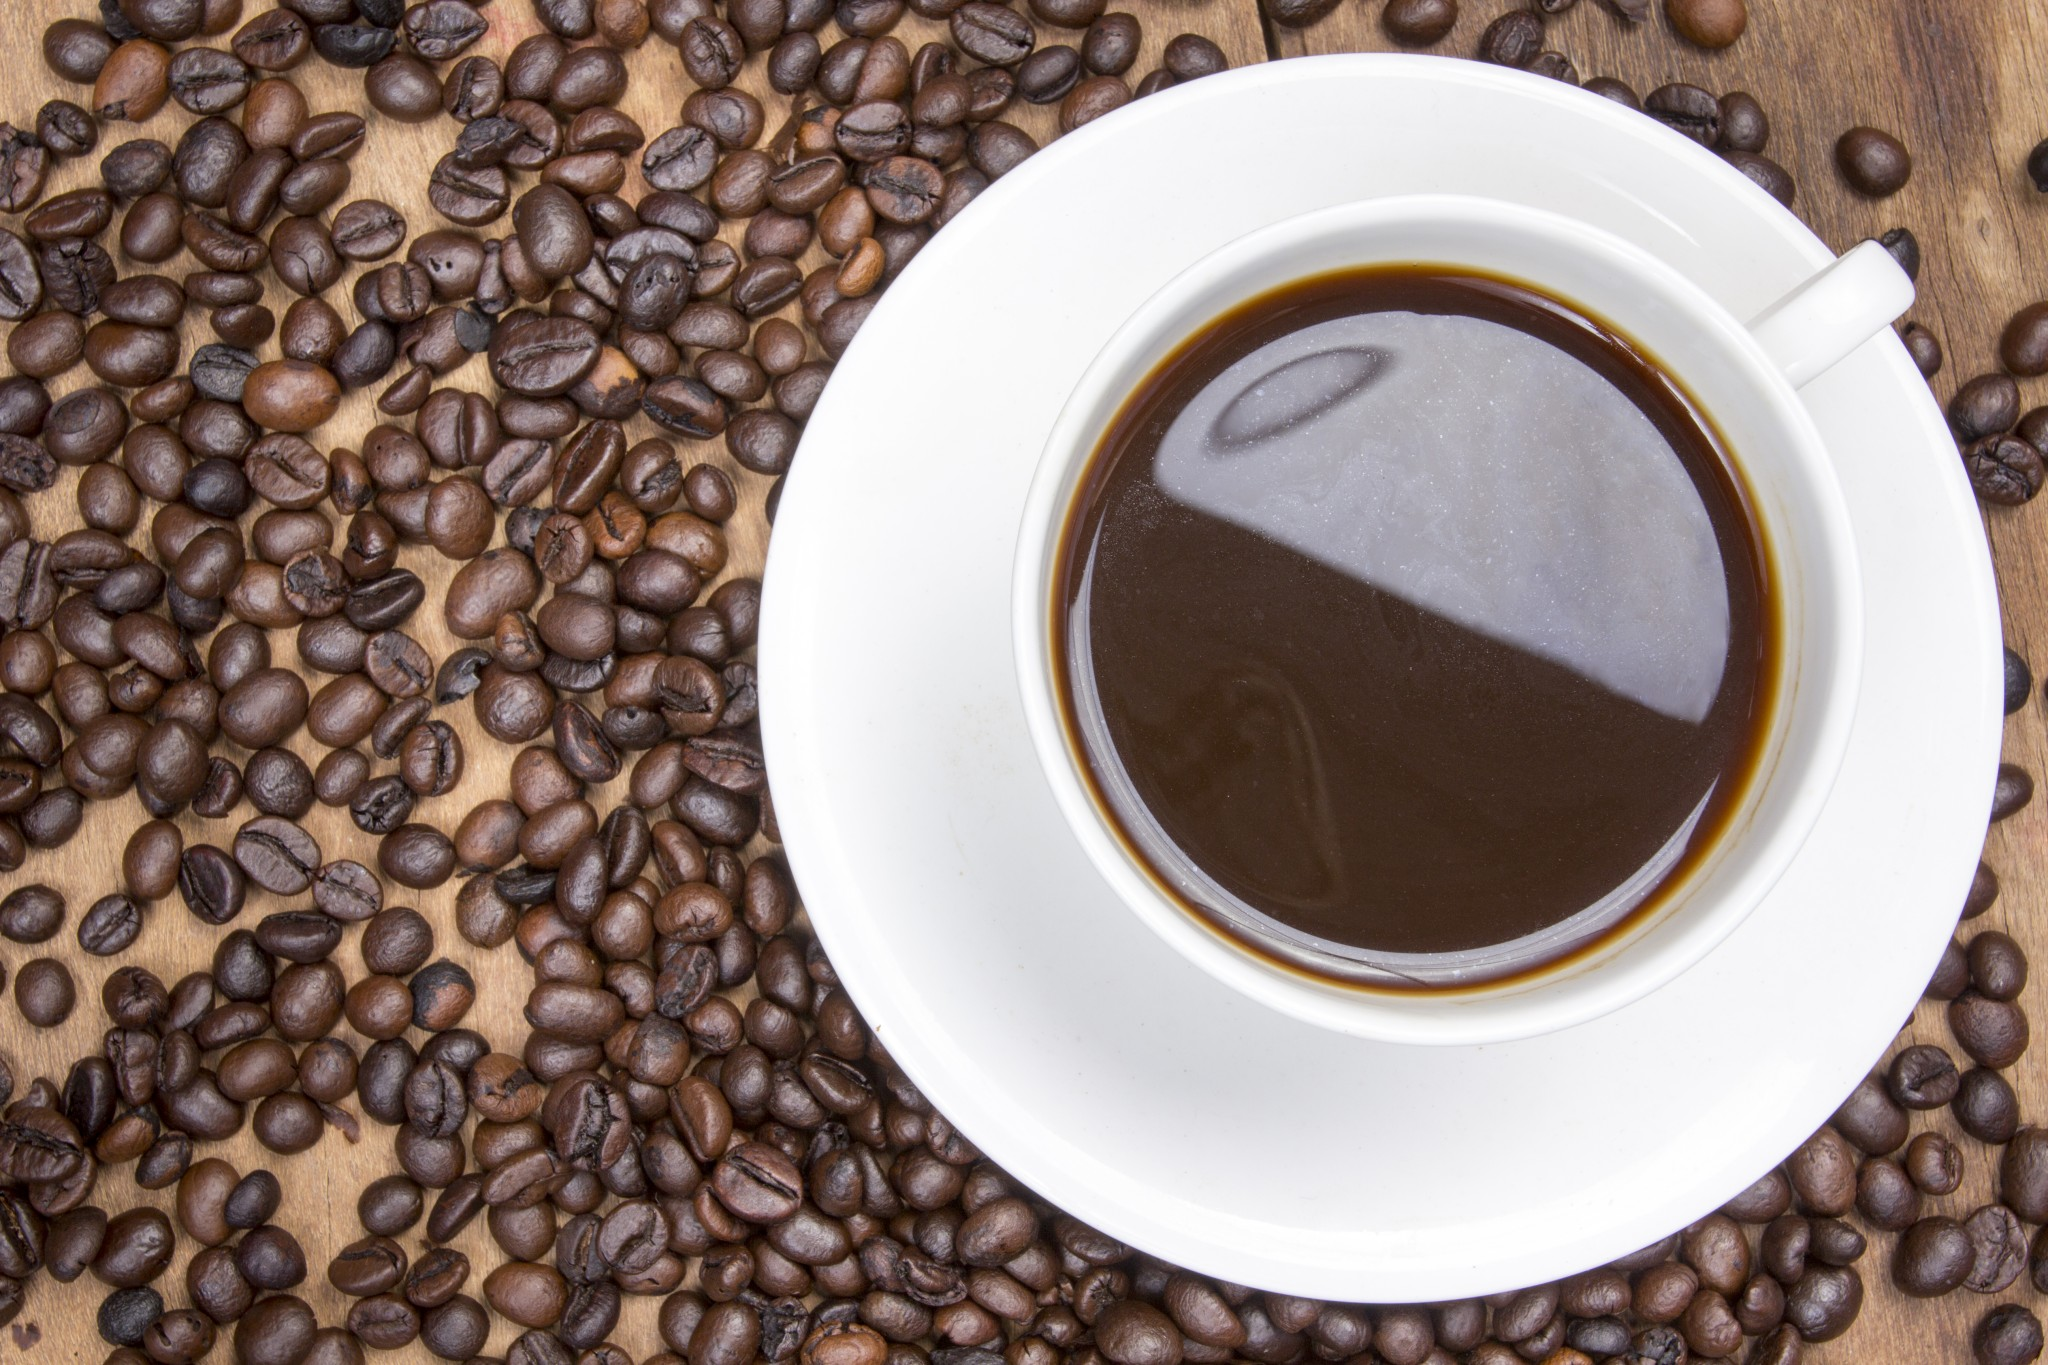 Looking at Starbucks worldwide, and at coffee and tea consumption, we can form conclusions about economic development.